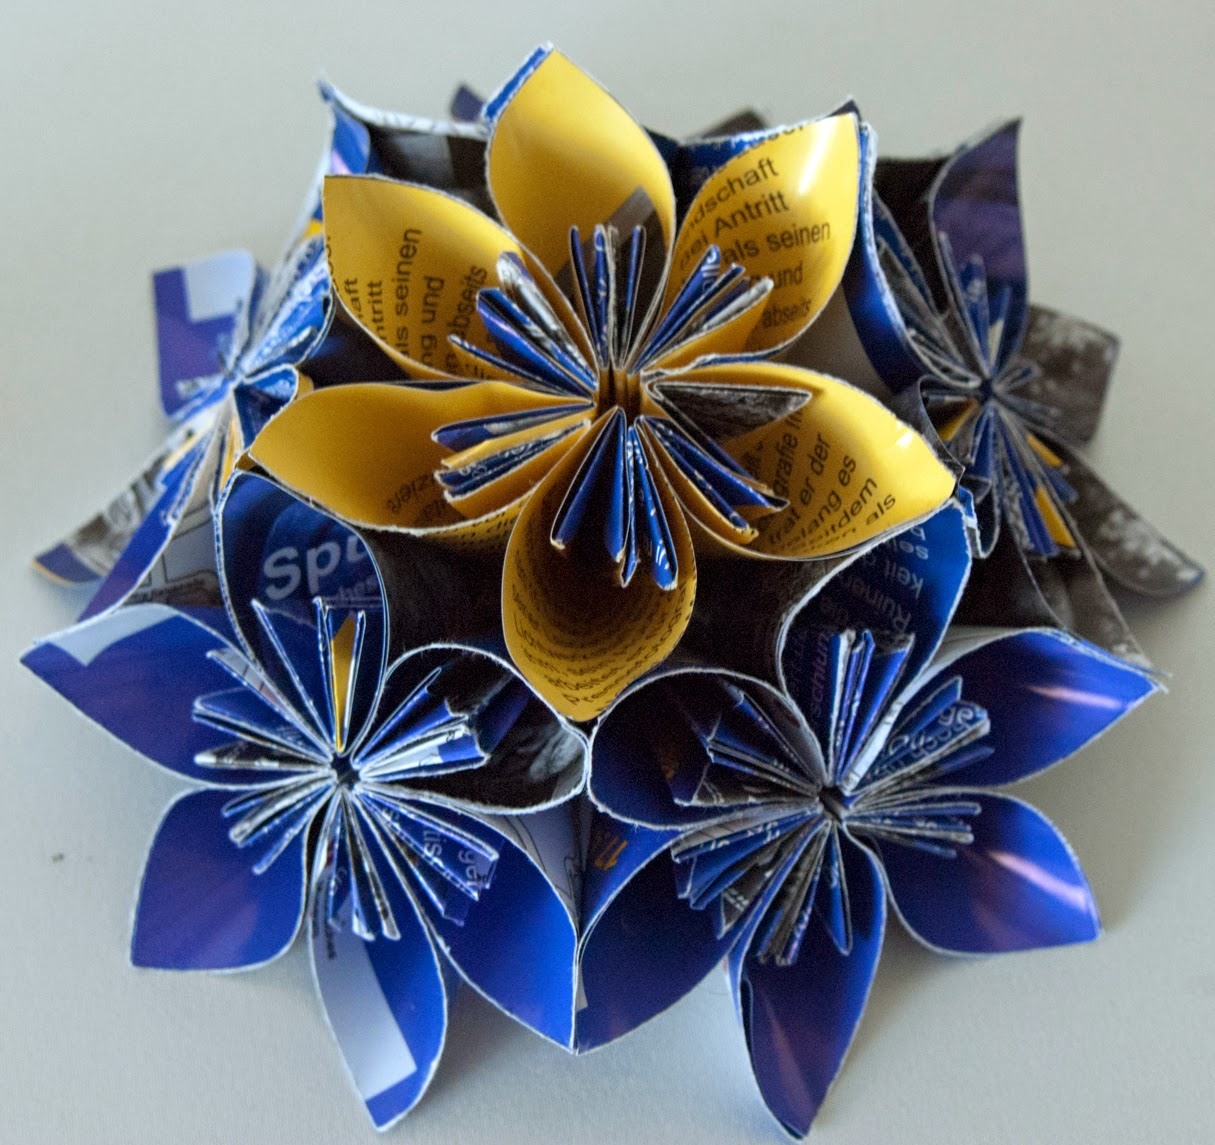 Quilling and other projects how to fold a paper kusudama ball tutorial i found that the half balls are better suited to staying in place if you want to set the kusudama ball on a shelf if you want to hang them or perch them mightylinksfo